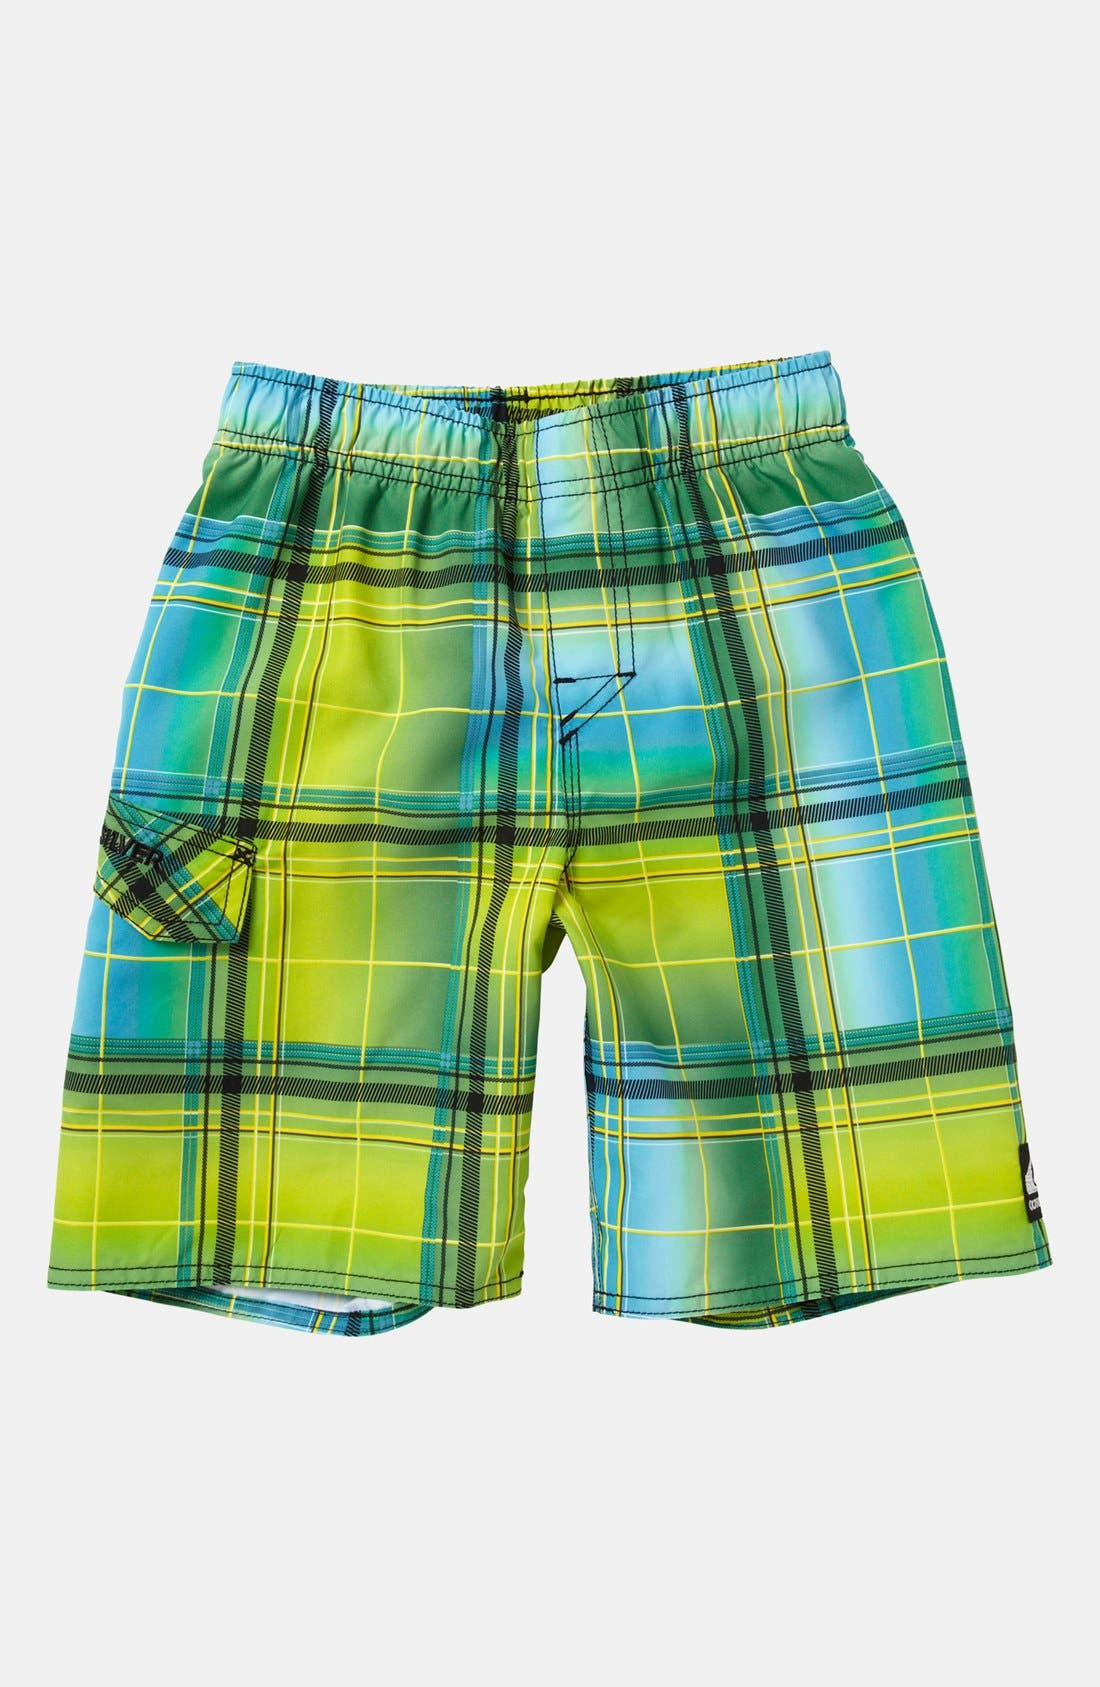 Alternate Image 1 Selected - Quiksilver 'Tronic' Volley Shorts (Baby Boys)